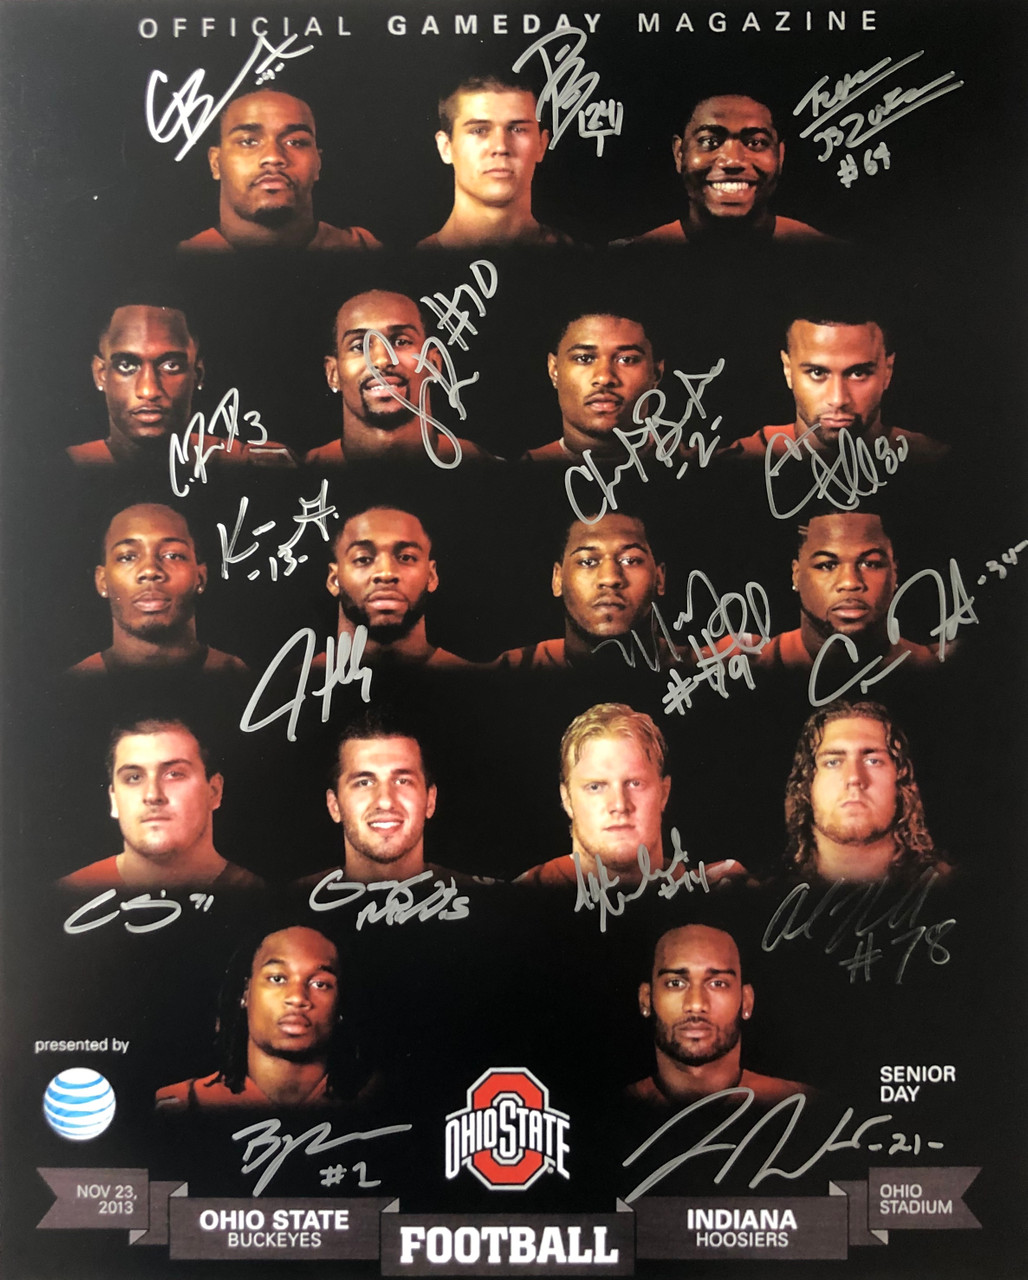 2013 Ohio State Buckeyes vs Indiana Game Program 16x20 Autographed Photo - Certified Authentic